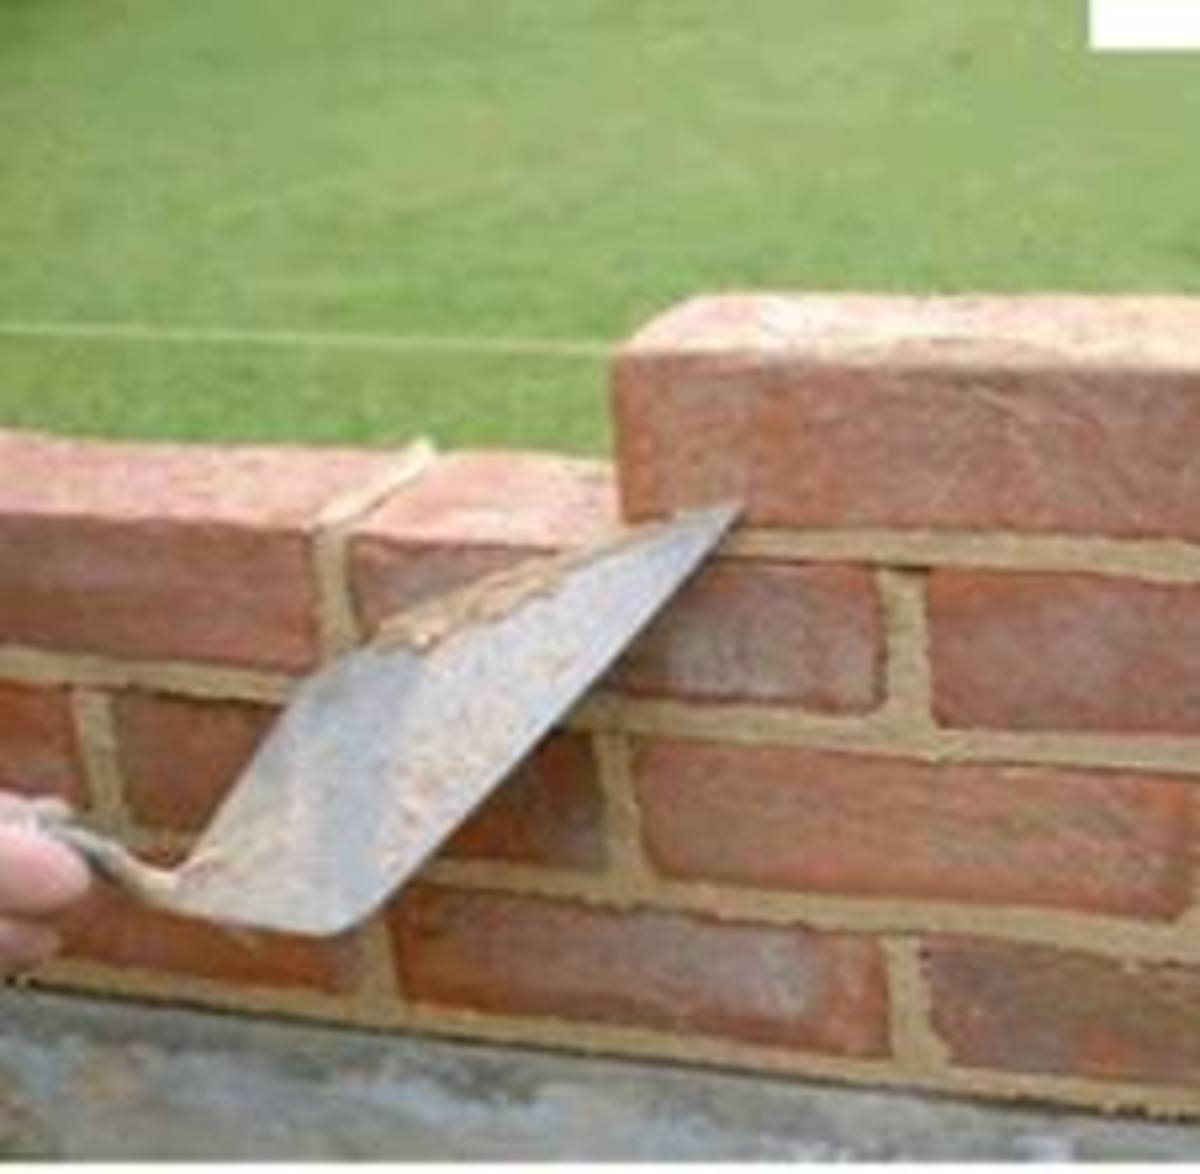 This photos shows a bricklayer trowel and how it is used to cut the mortar while laying bricks, you can note also that the top brick has been laid level with the line.